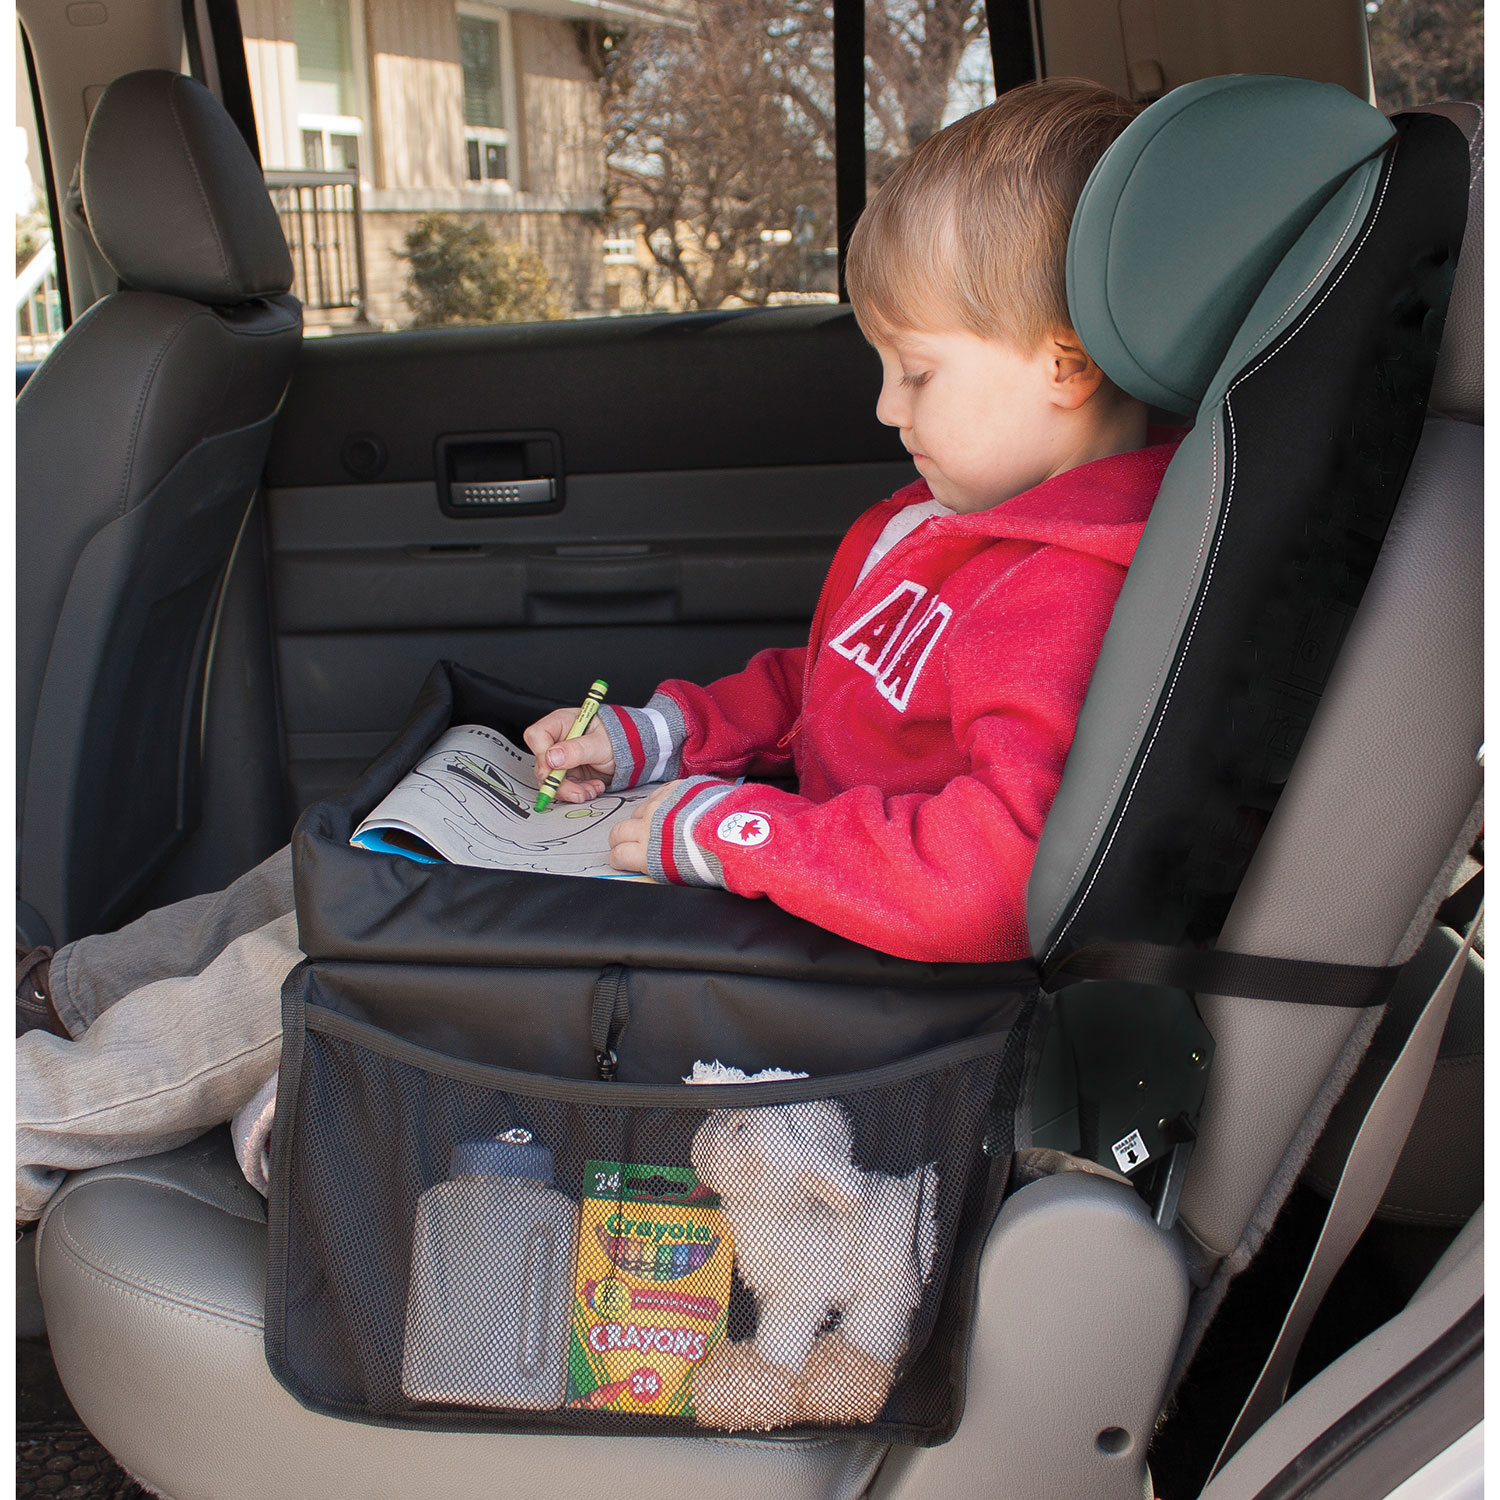 4c92d636aa69 Jolly Jumper Car Seat Travel Tray - Black   Car Seat Accessories ...